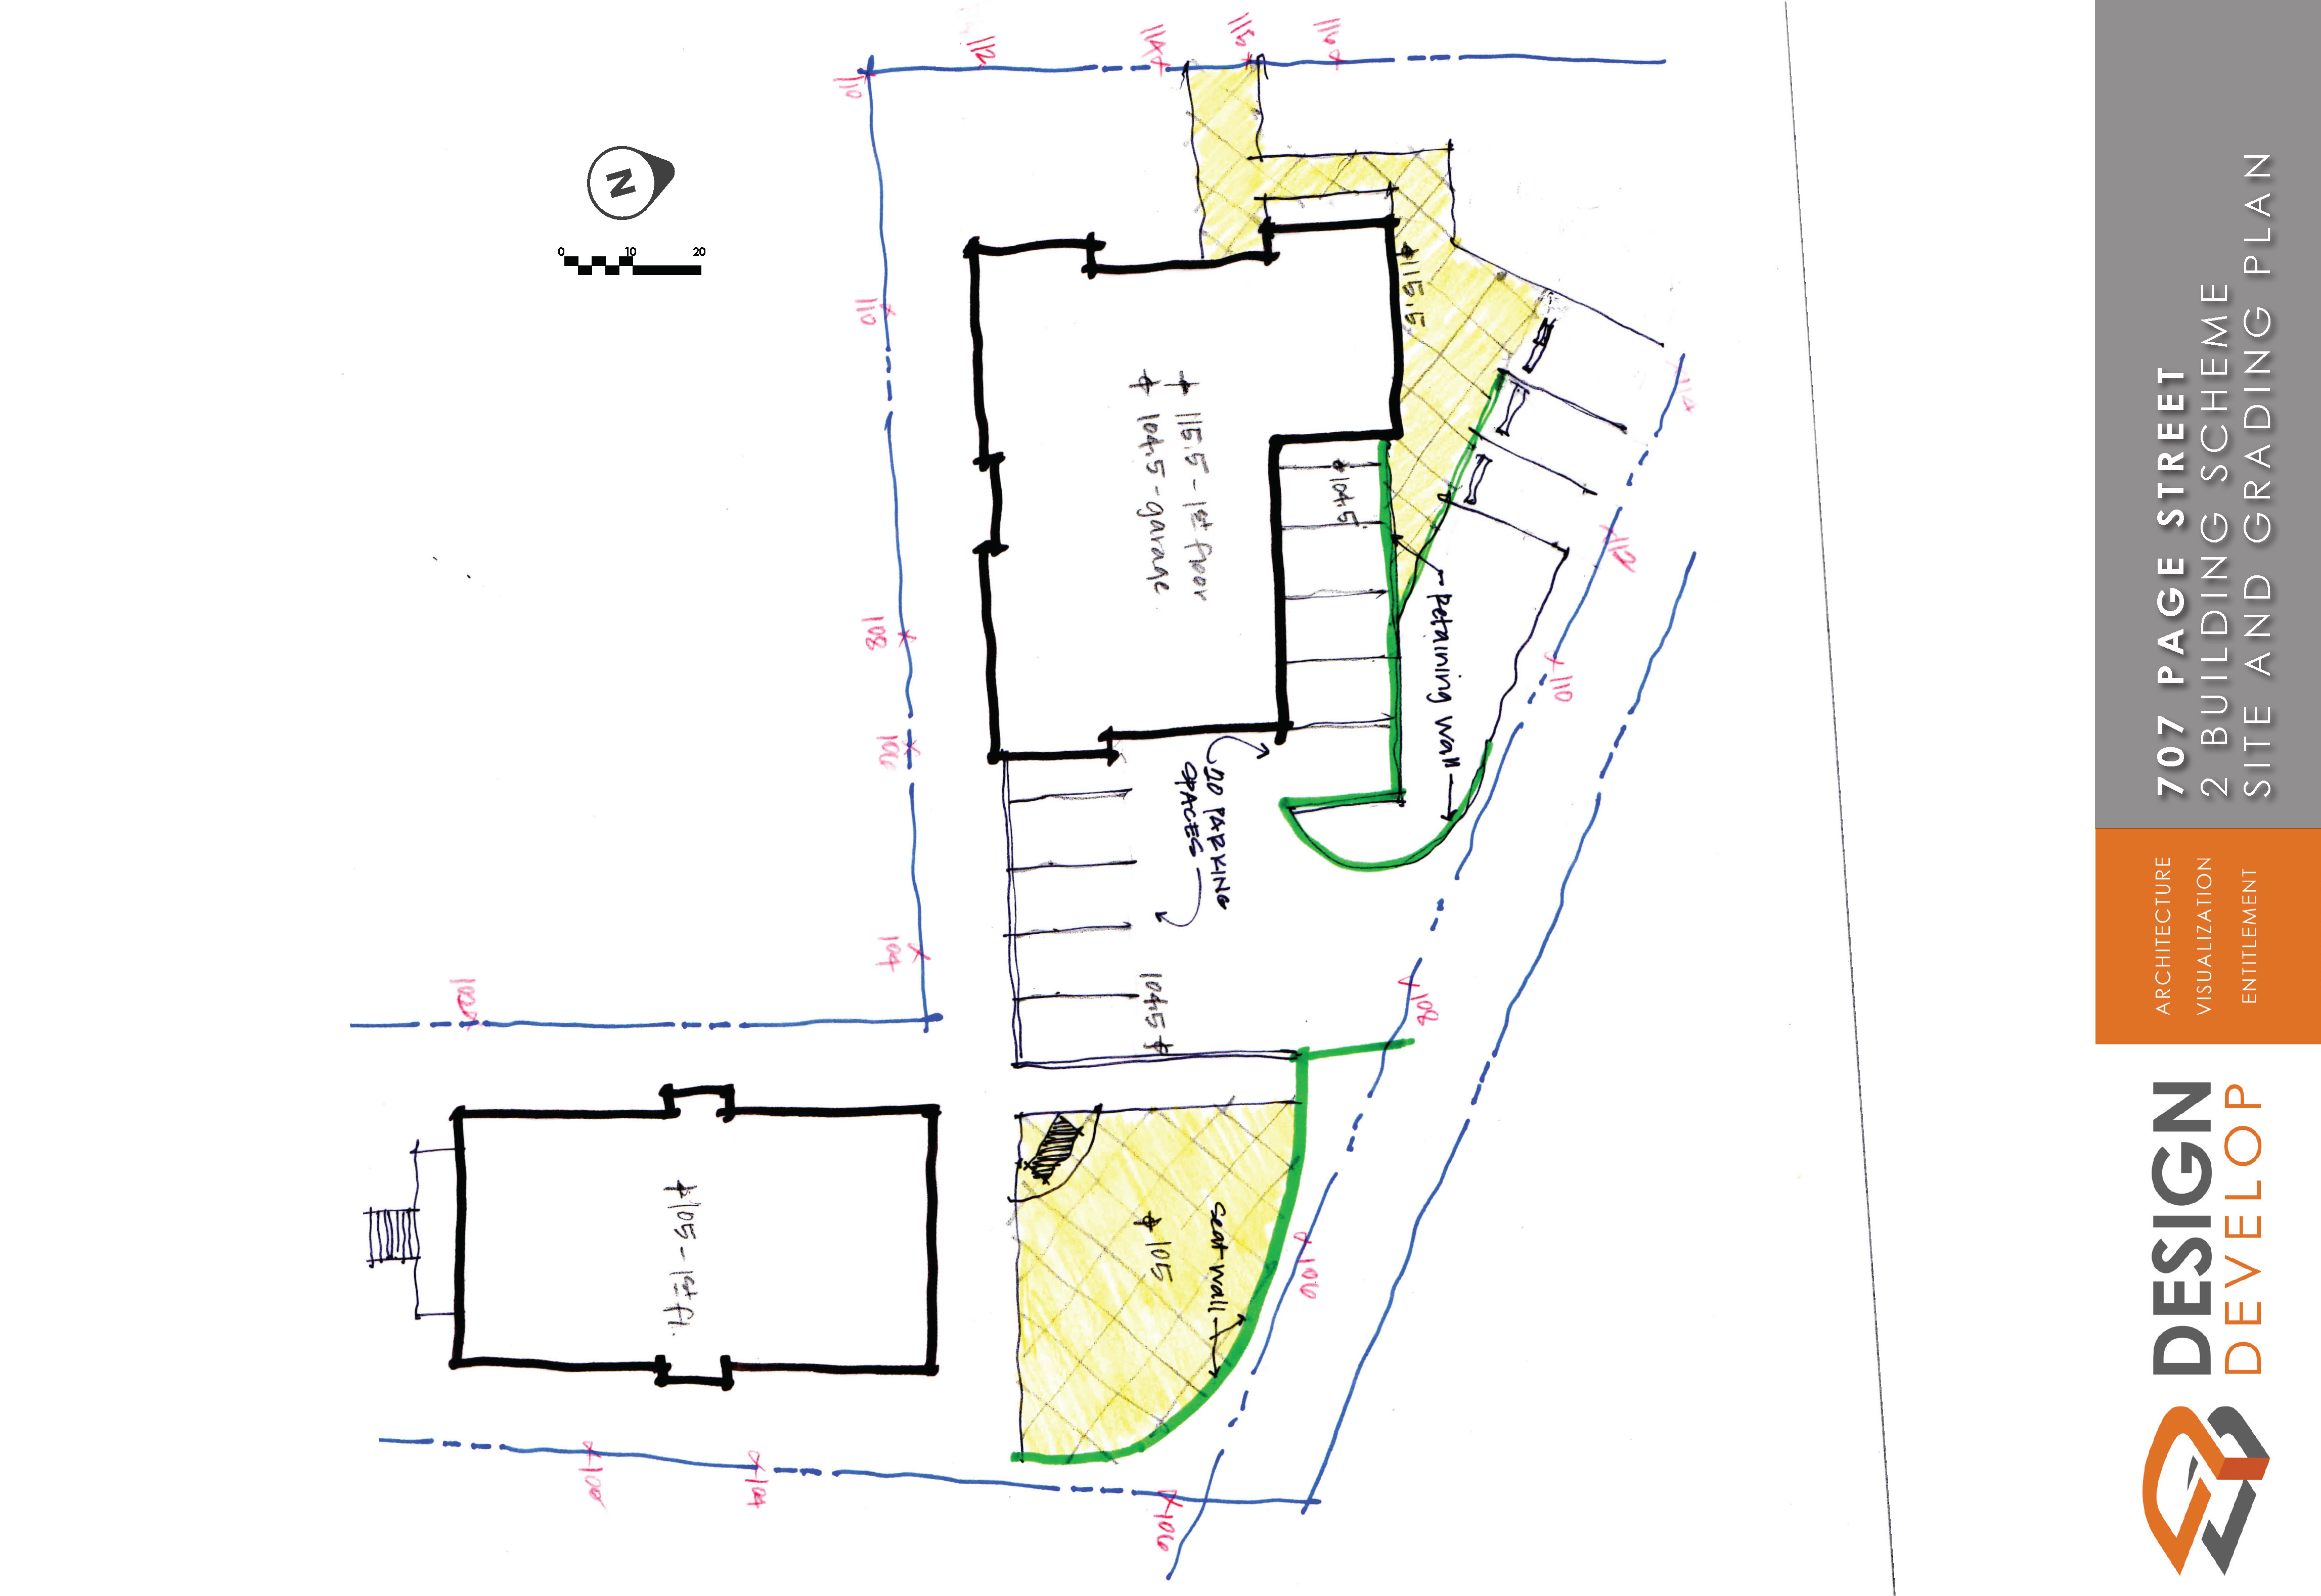 Site and Grading Plan